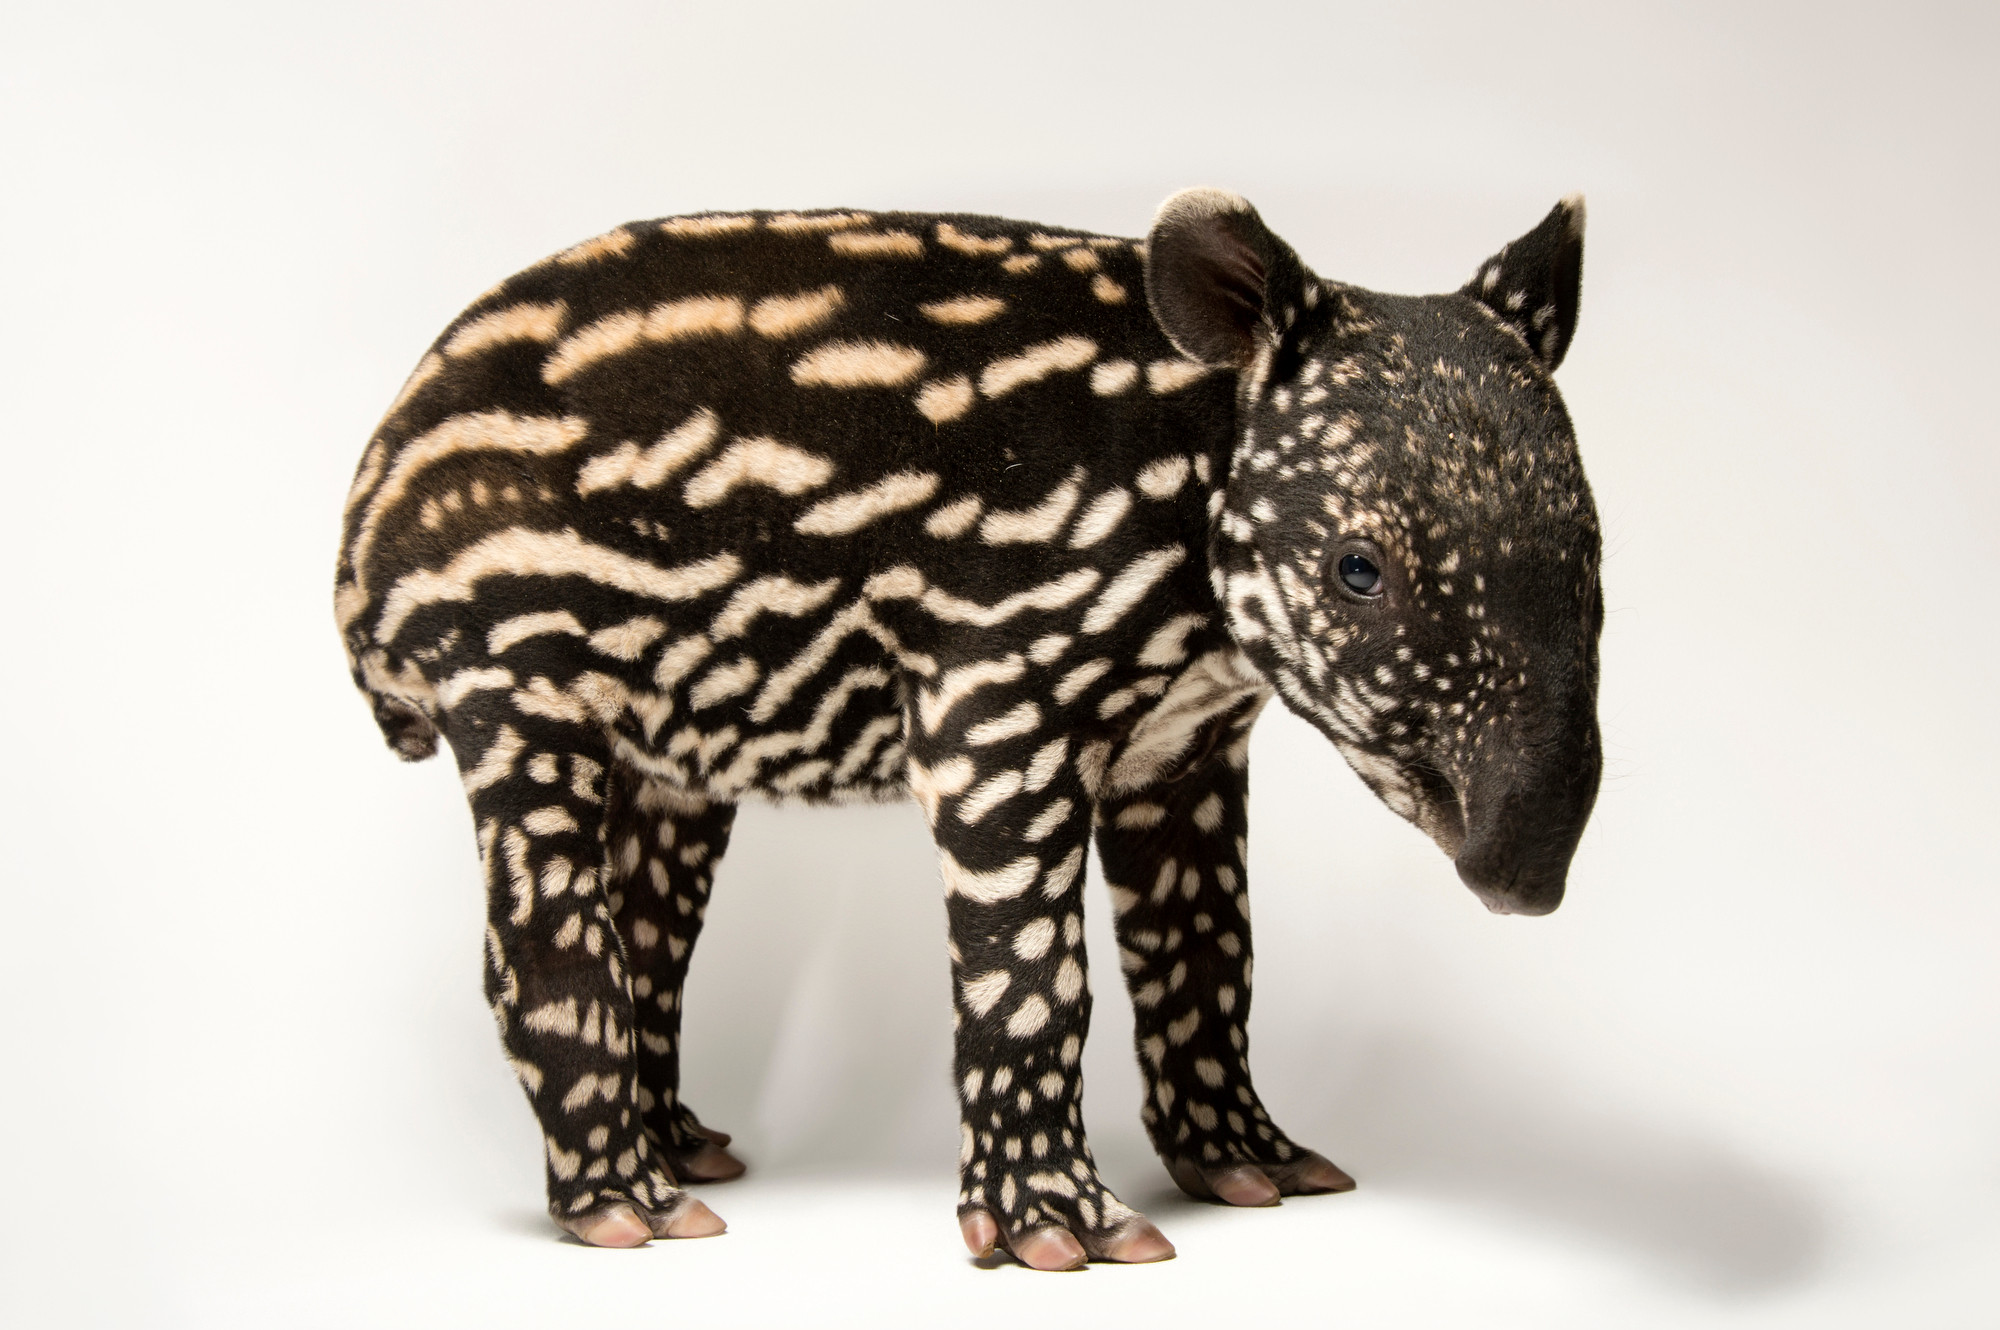 Picture of a six-day-old Malayan tapir, Tapirus indicus, at the Minnesota Zoo. Endangered (IUCN) and federally endangered